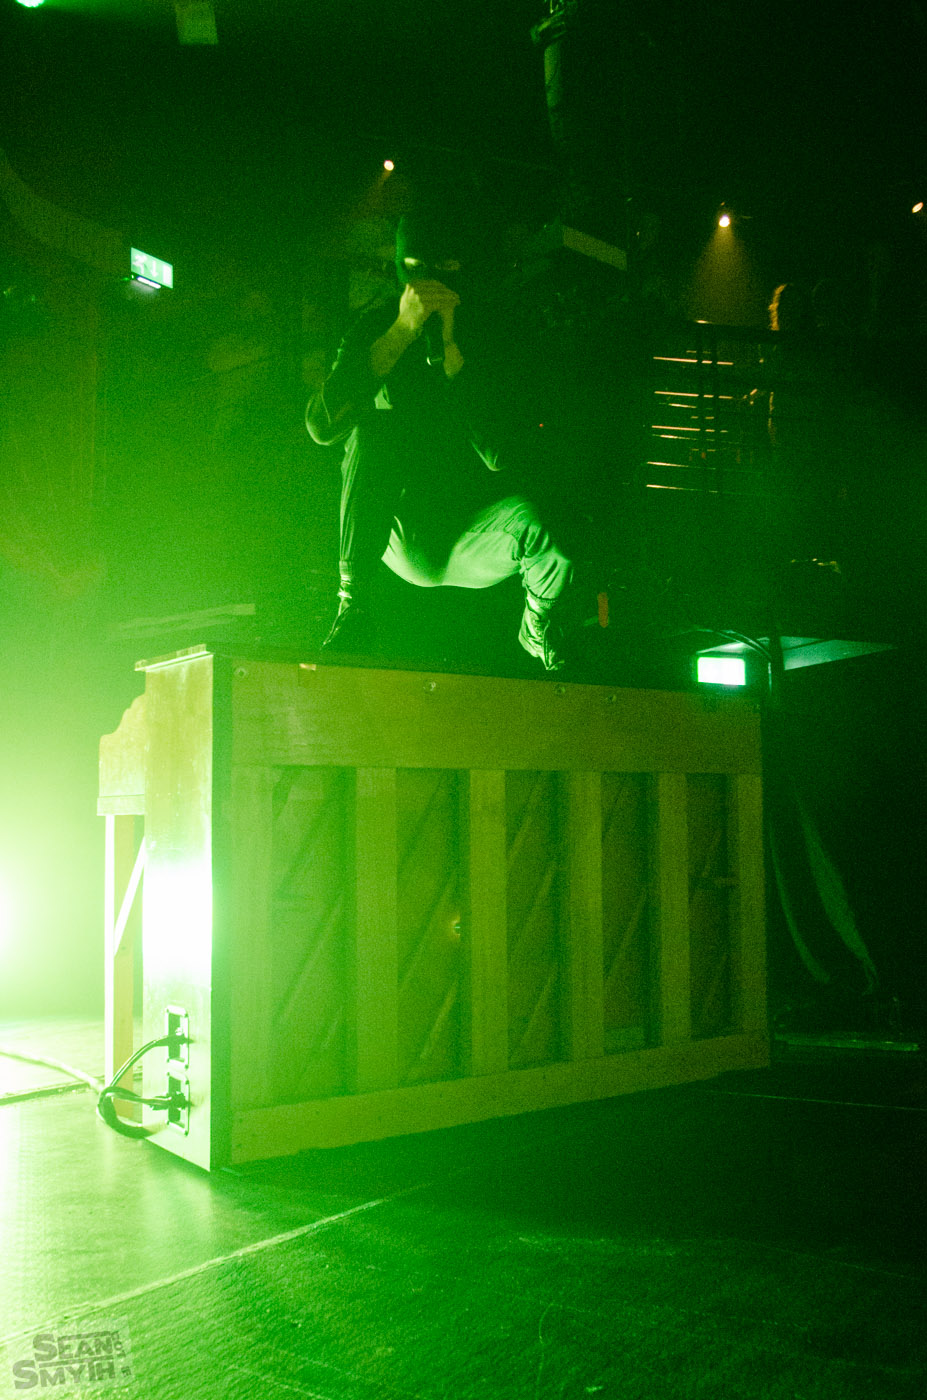 twenty-one-pilots-at-the-academy-by-sean-smyth-16-11-14-11-of-41_15621972830_o